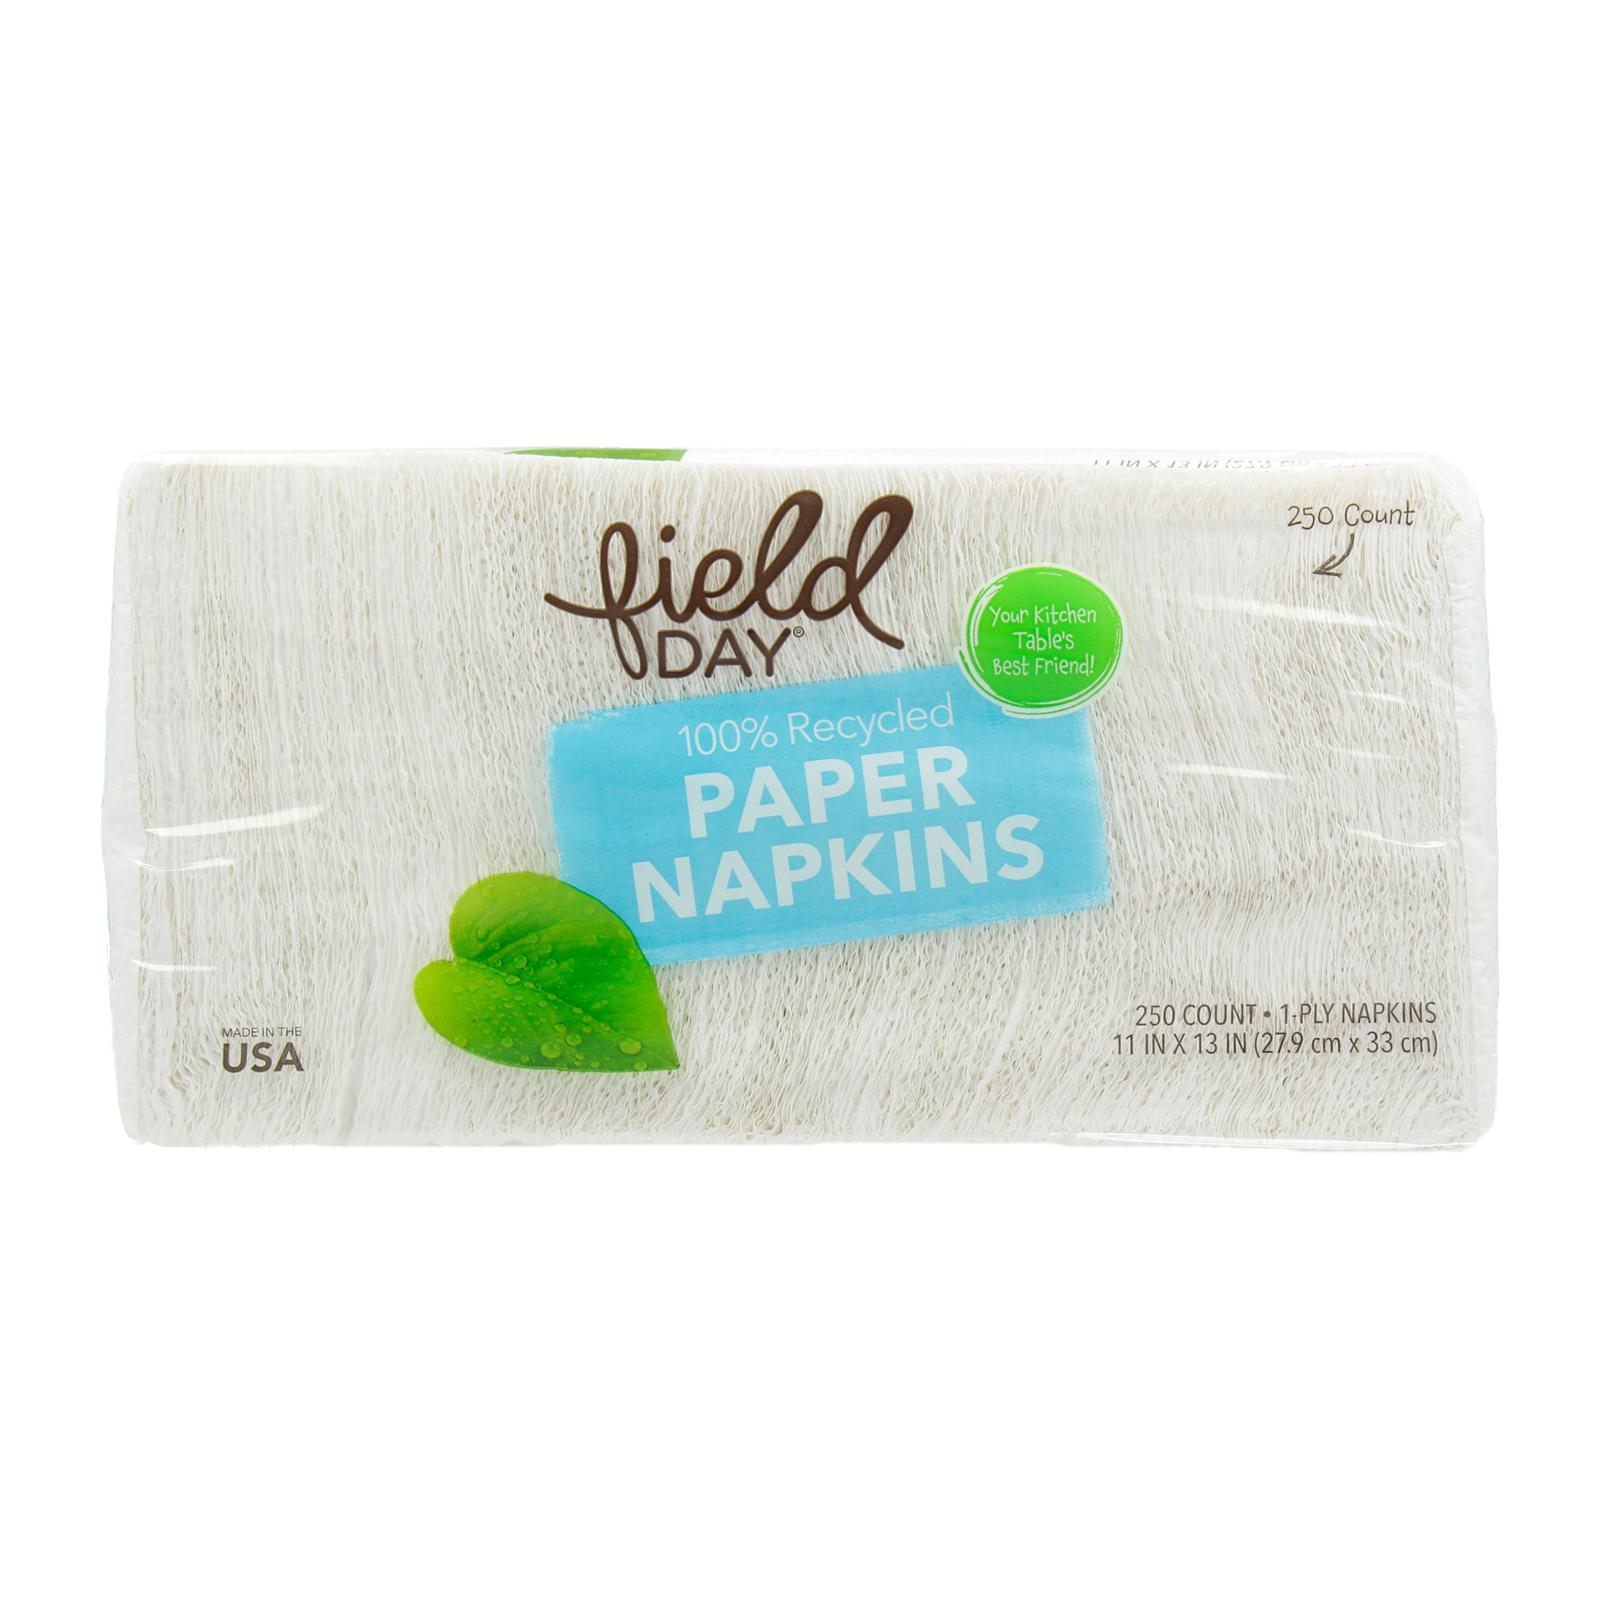 Field Day 100 Percent Recycled White Paper Napkin-250 Count Per Pack - By Wholesome Harvest